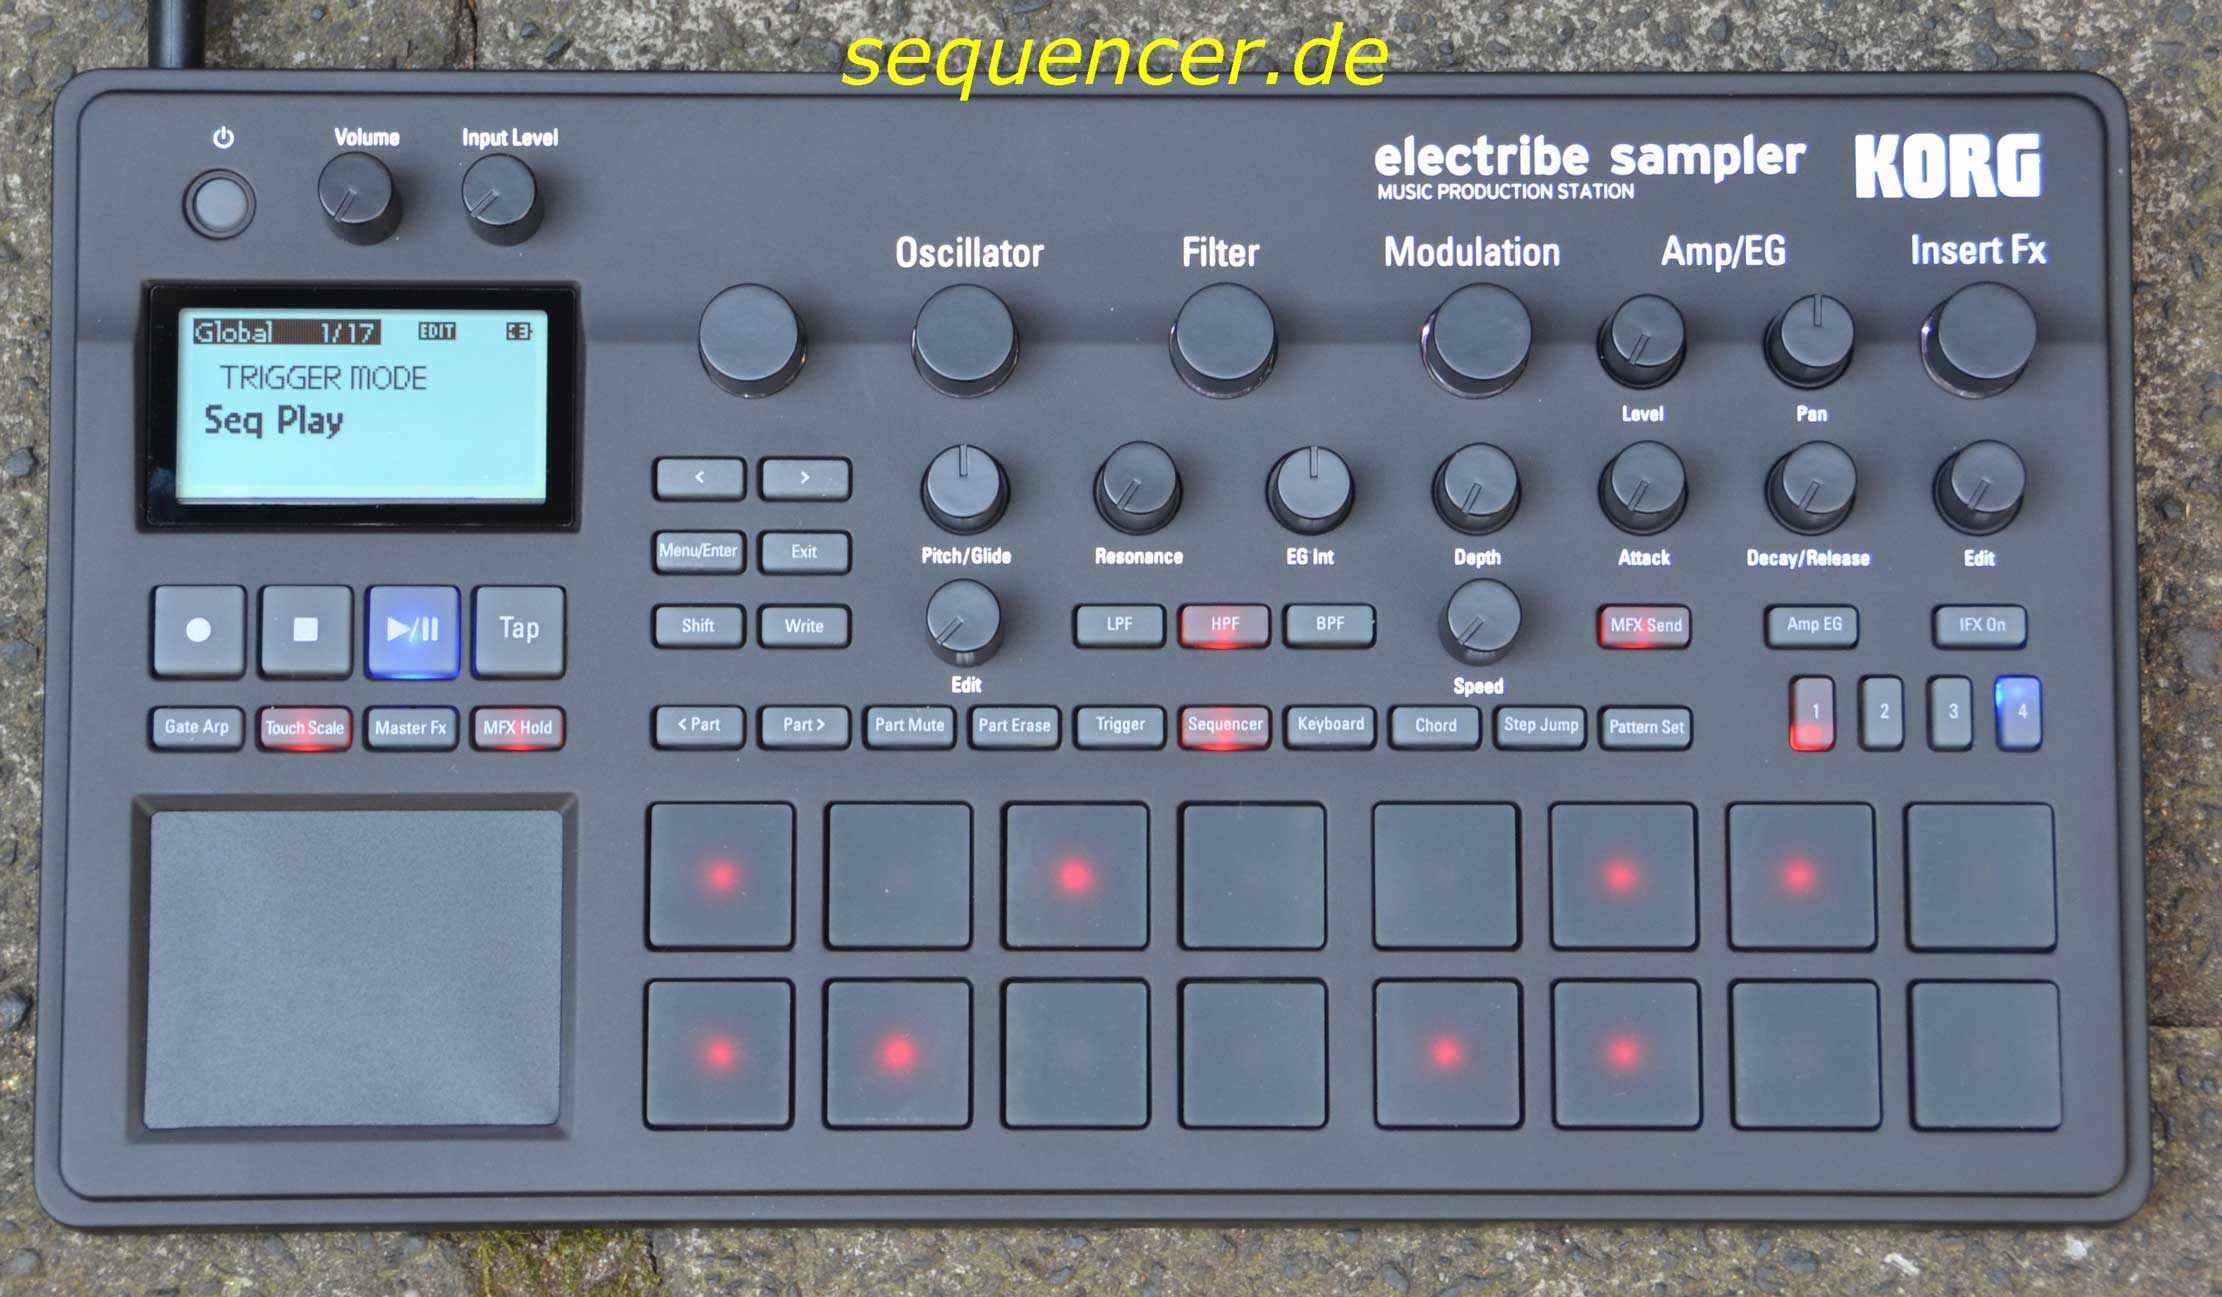 Korg Electribe Sampler 2S, 2S, Sampler 2S, s 2 synthesizer